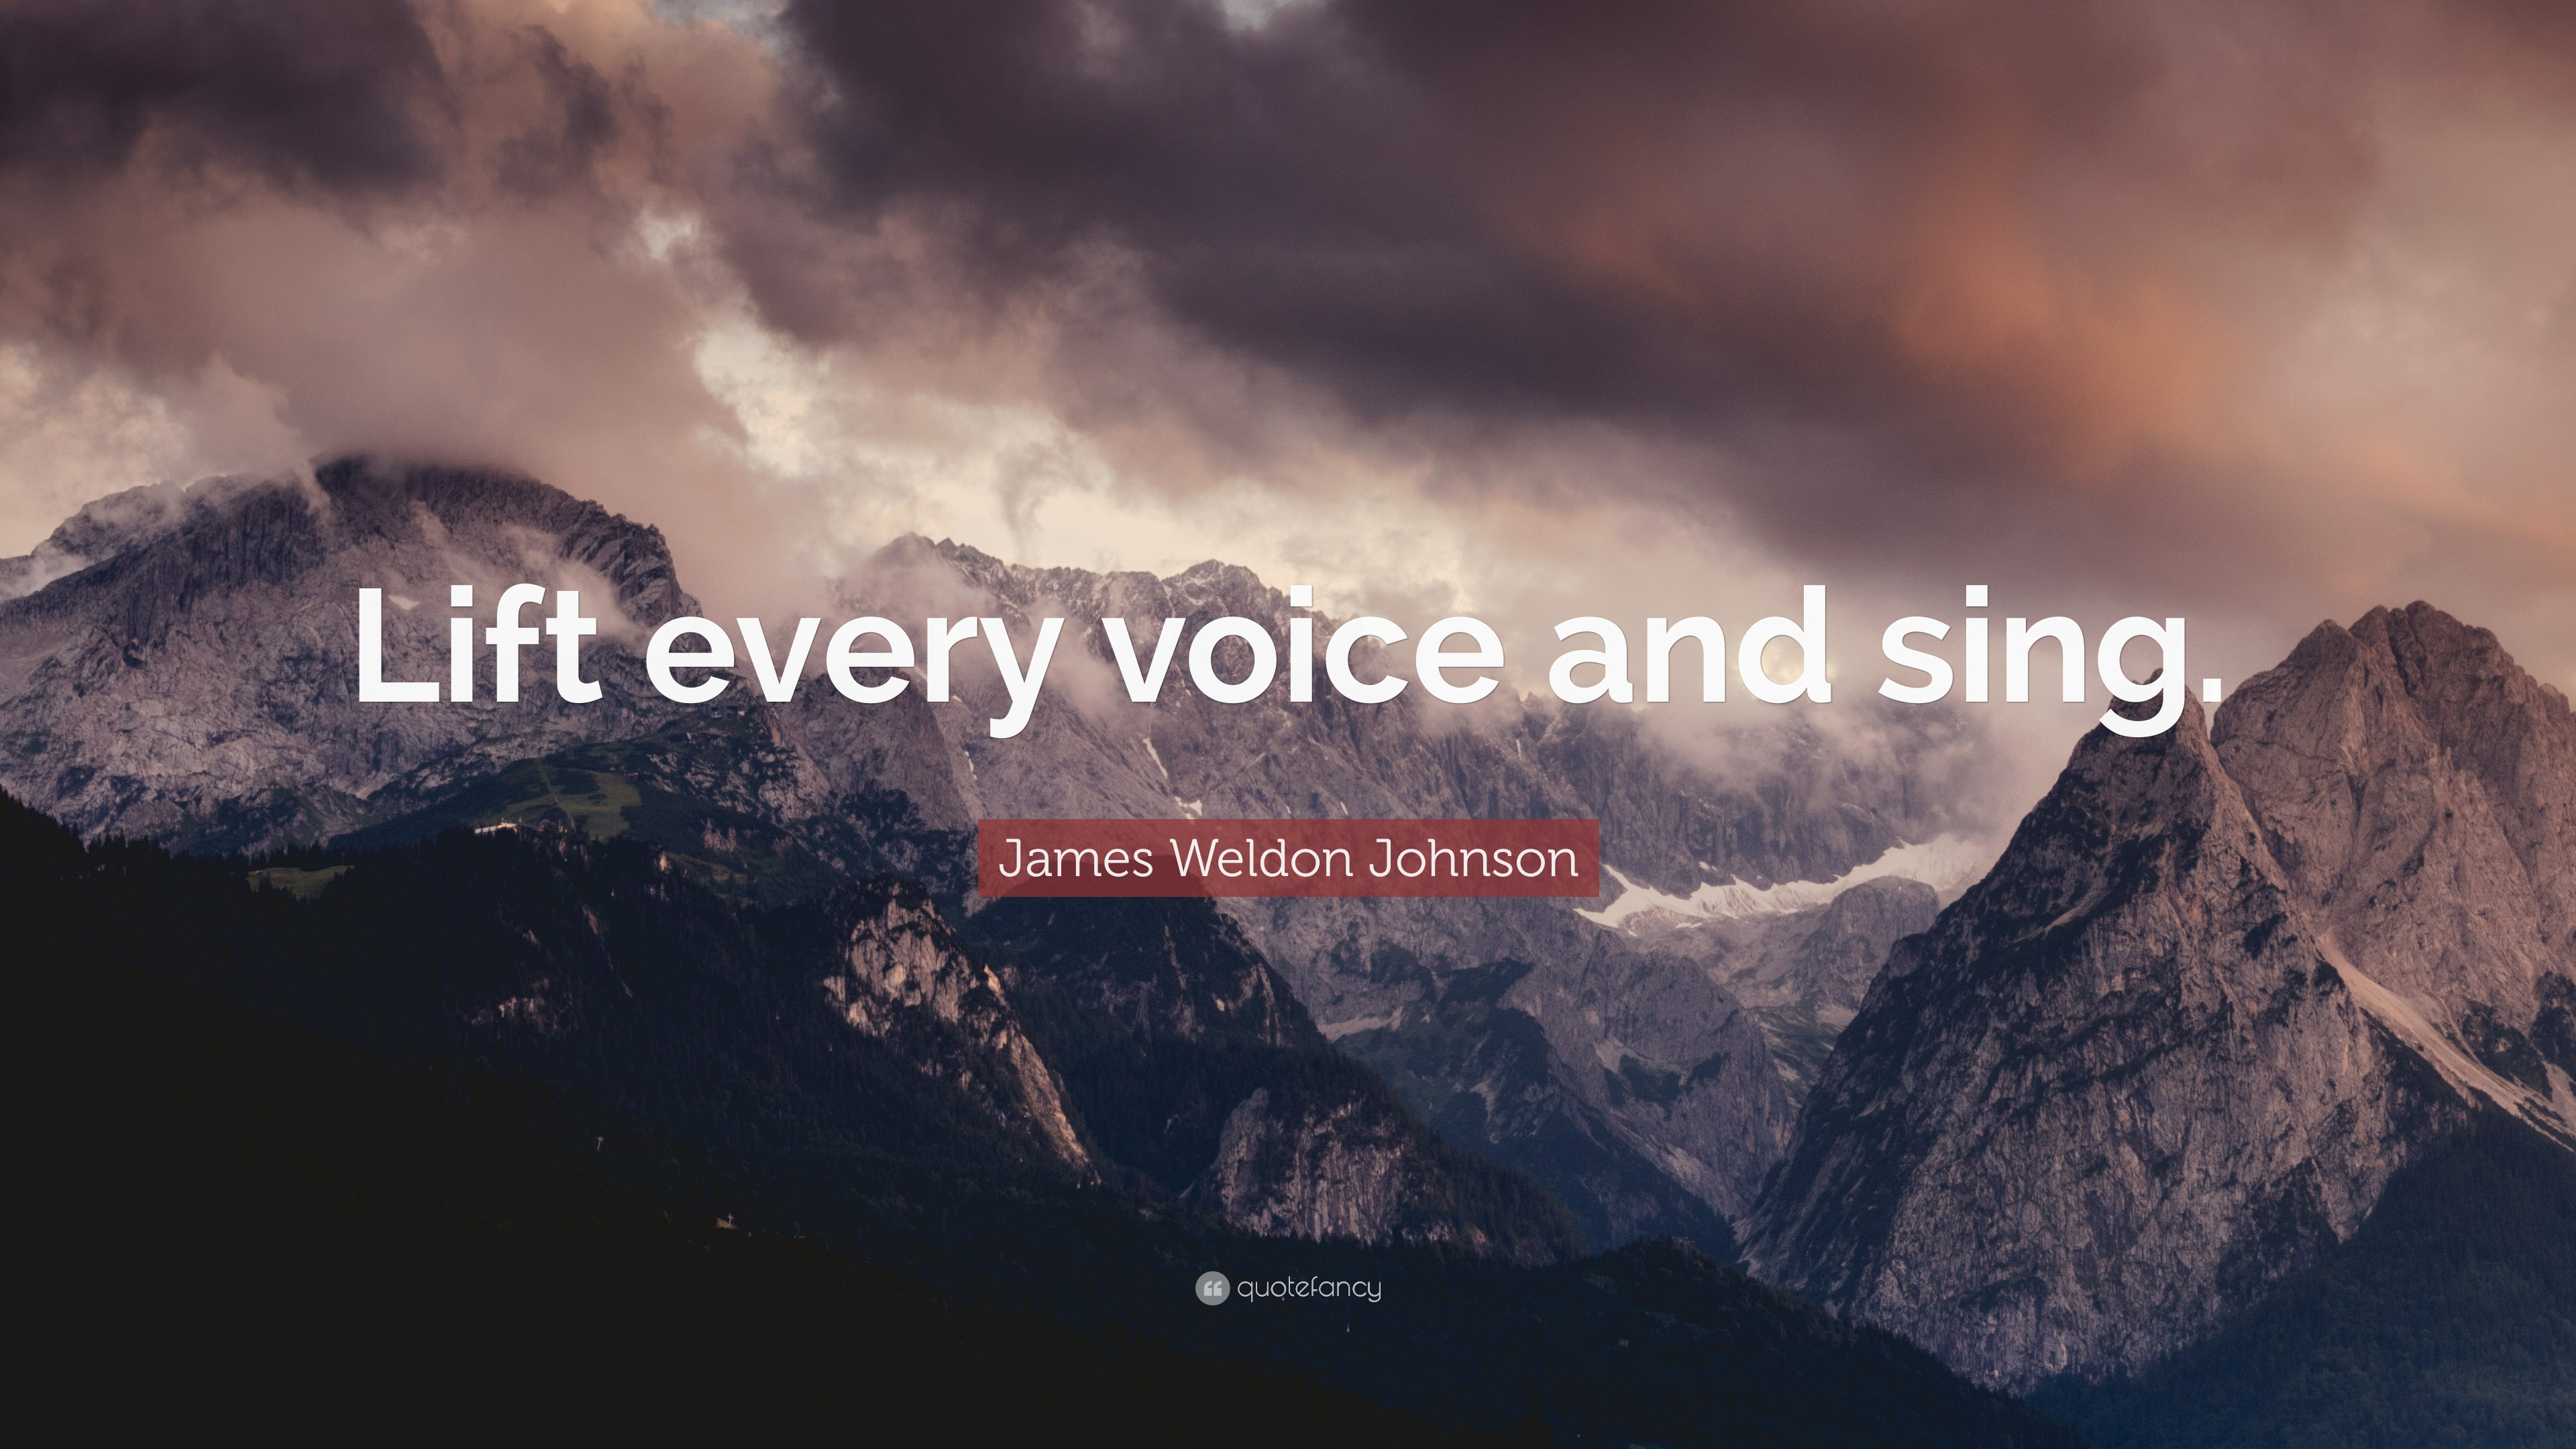 an analysis of lift every voice and sing by james weldon johnson Brief summary of the poem lift every voice and sing  and sing by james  weldon johnson  the first stanza of the poem focuses on singing and music.